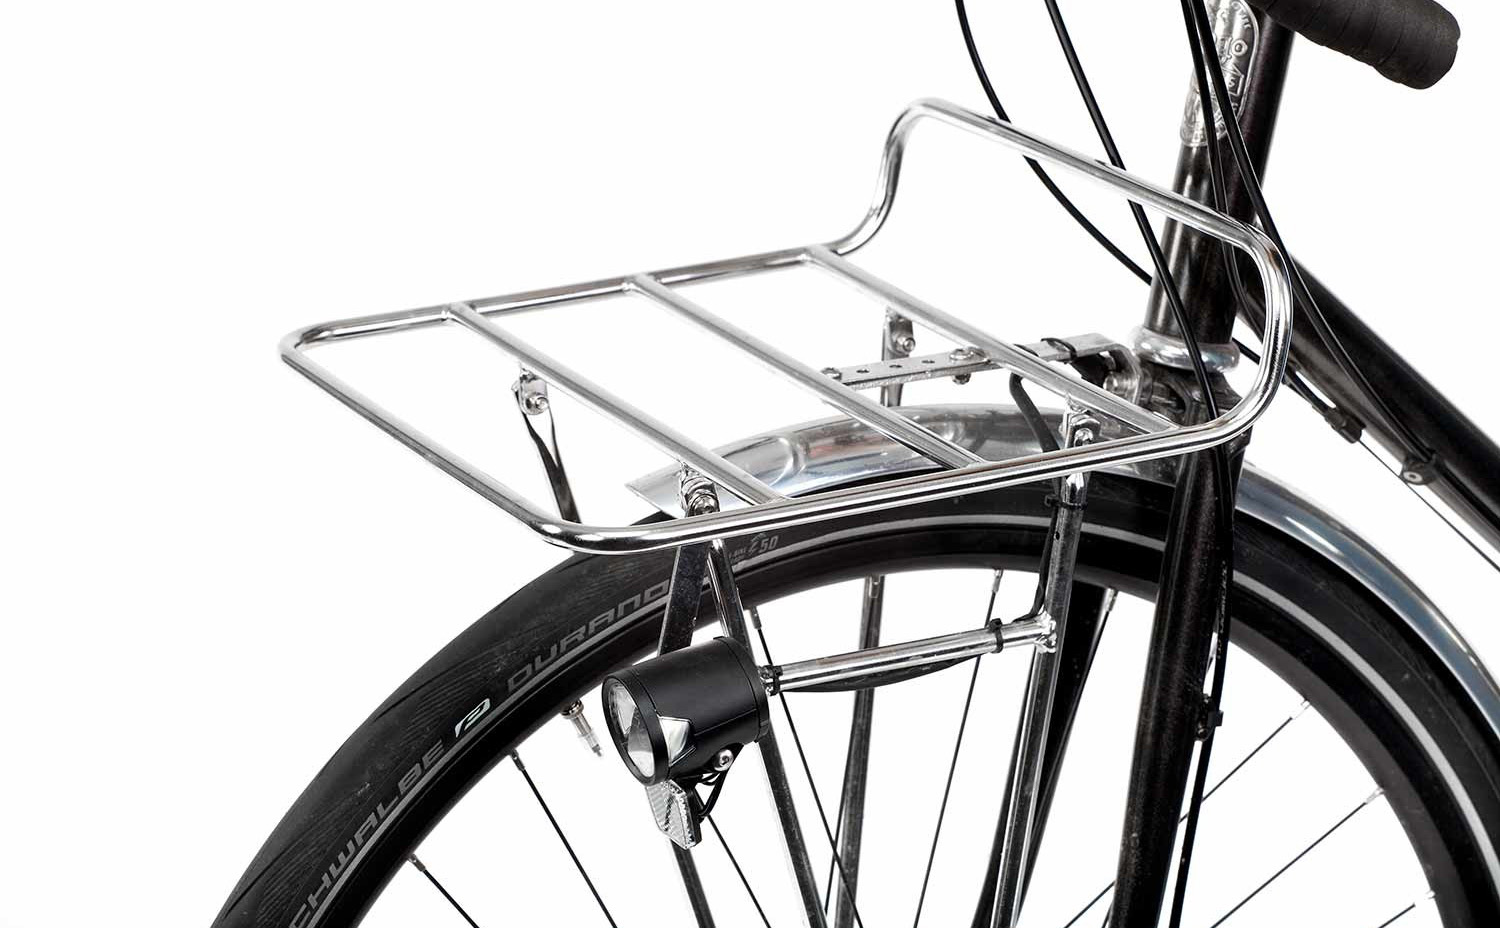 pelago-commuter-front-rack-light-bracket.jpg